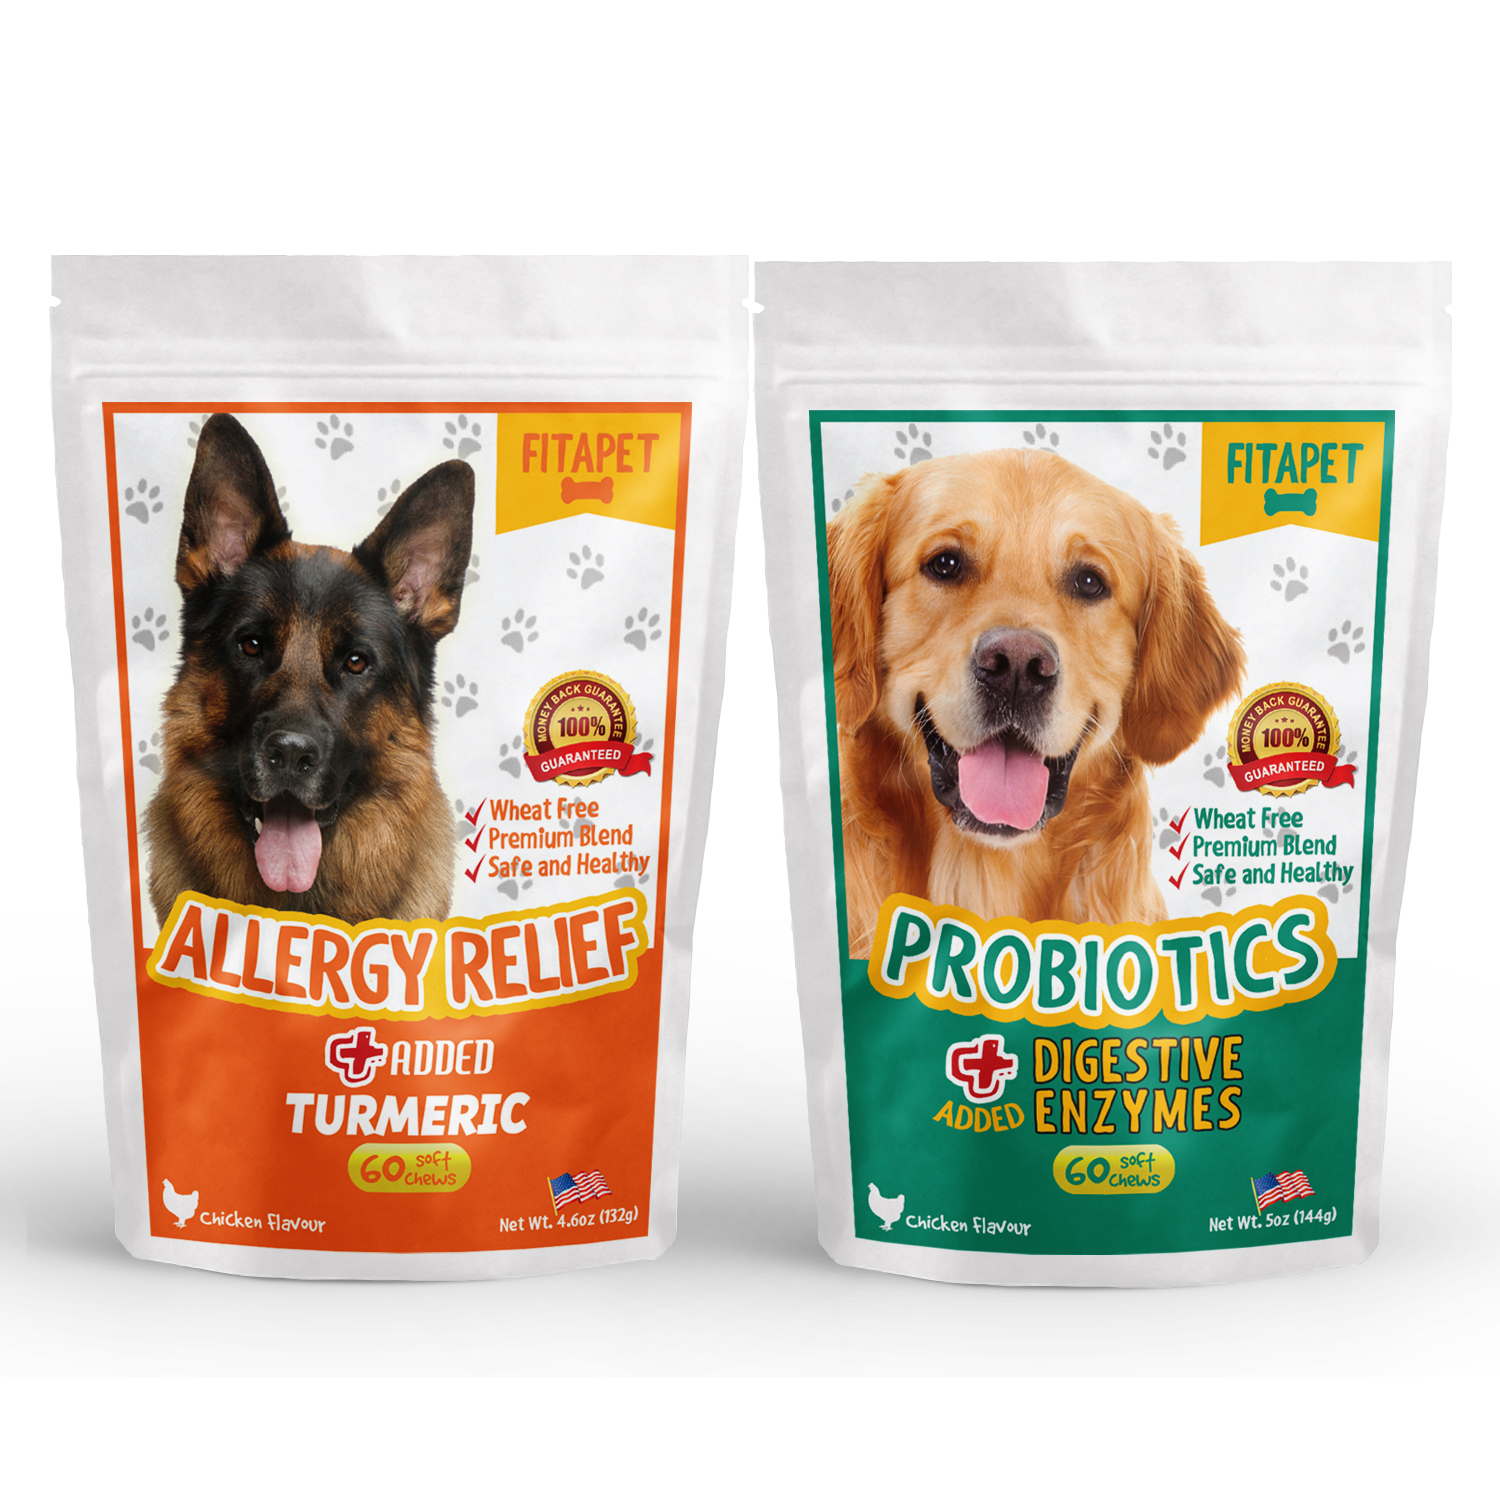 Probiotics and Allergy Relief - Why Not?